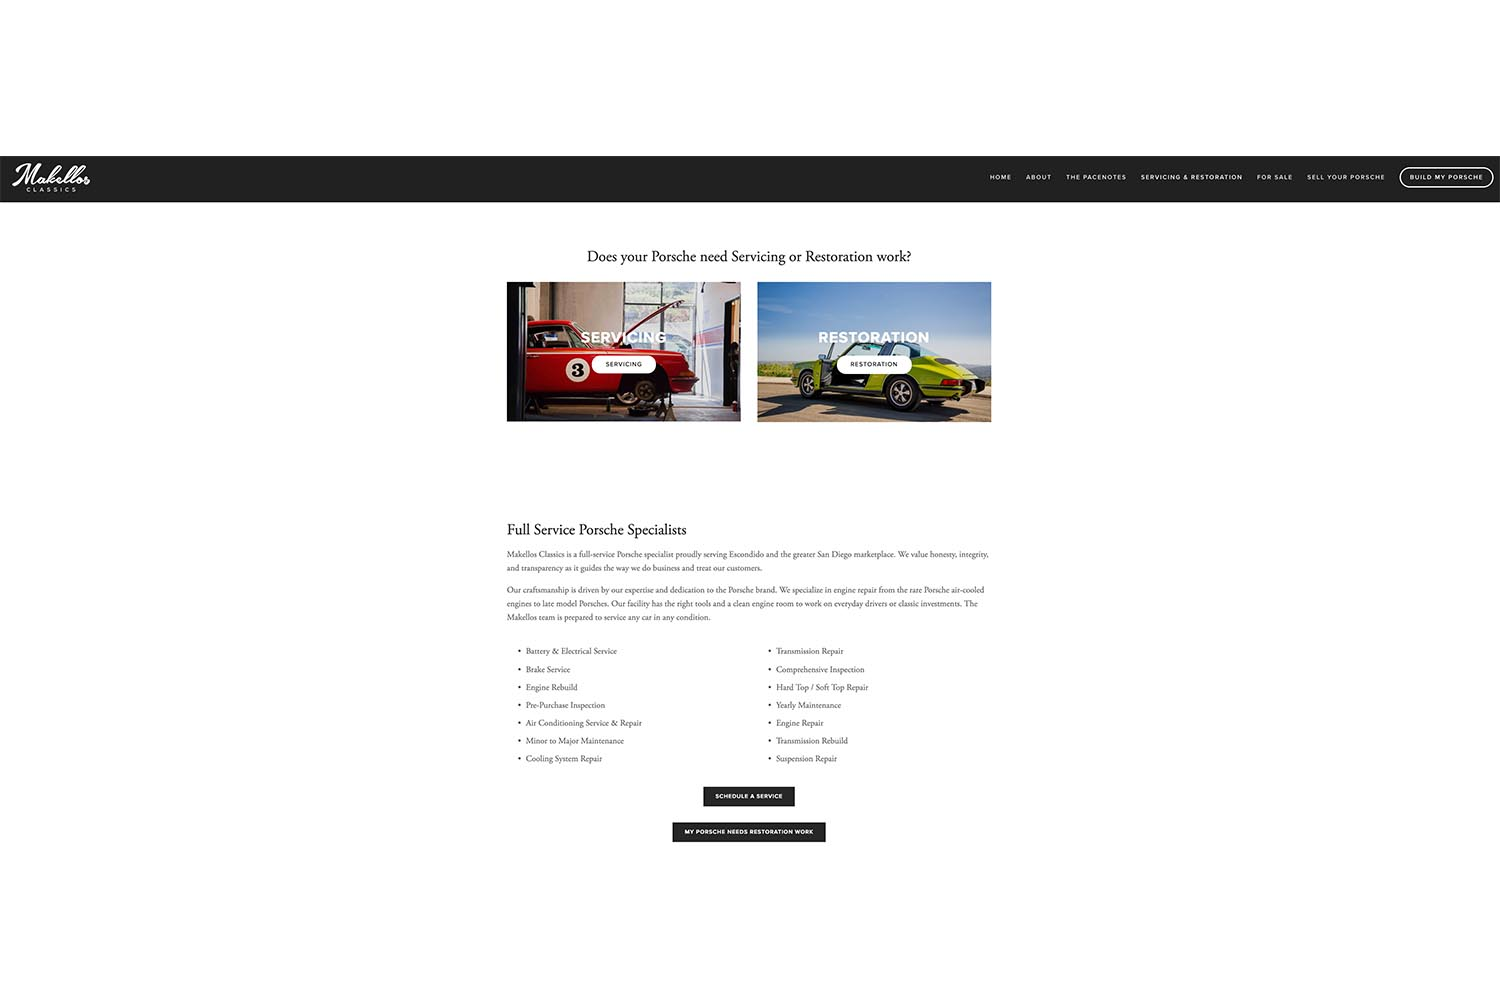 The New Servicing and Restoration Page